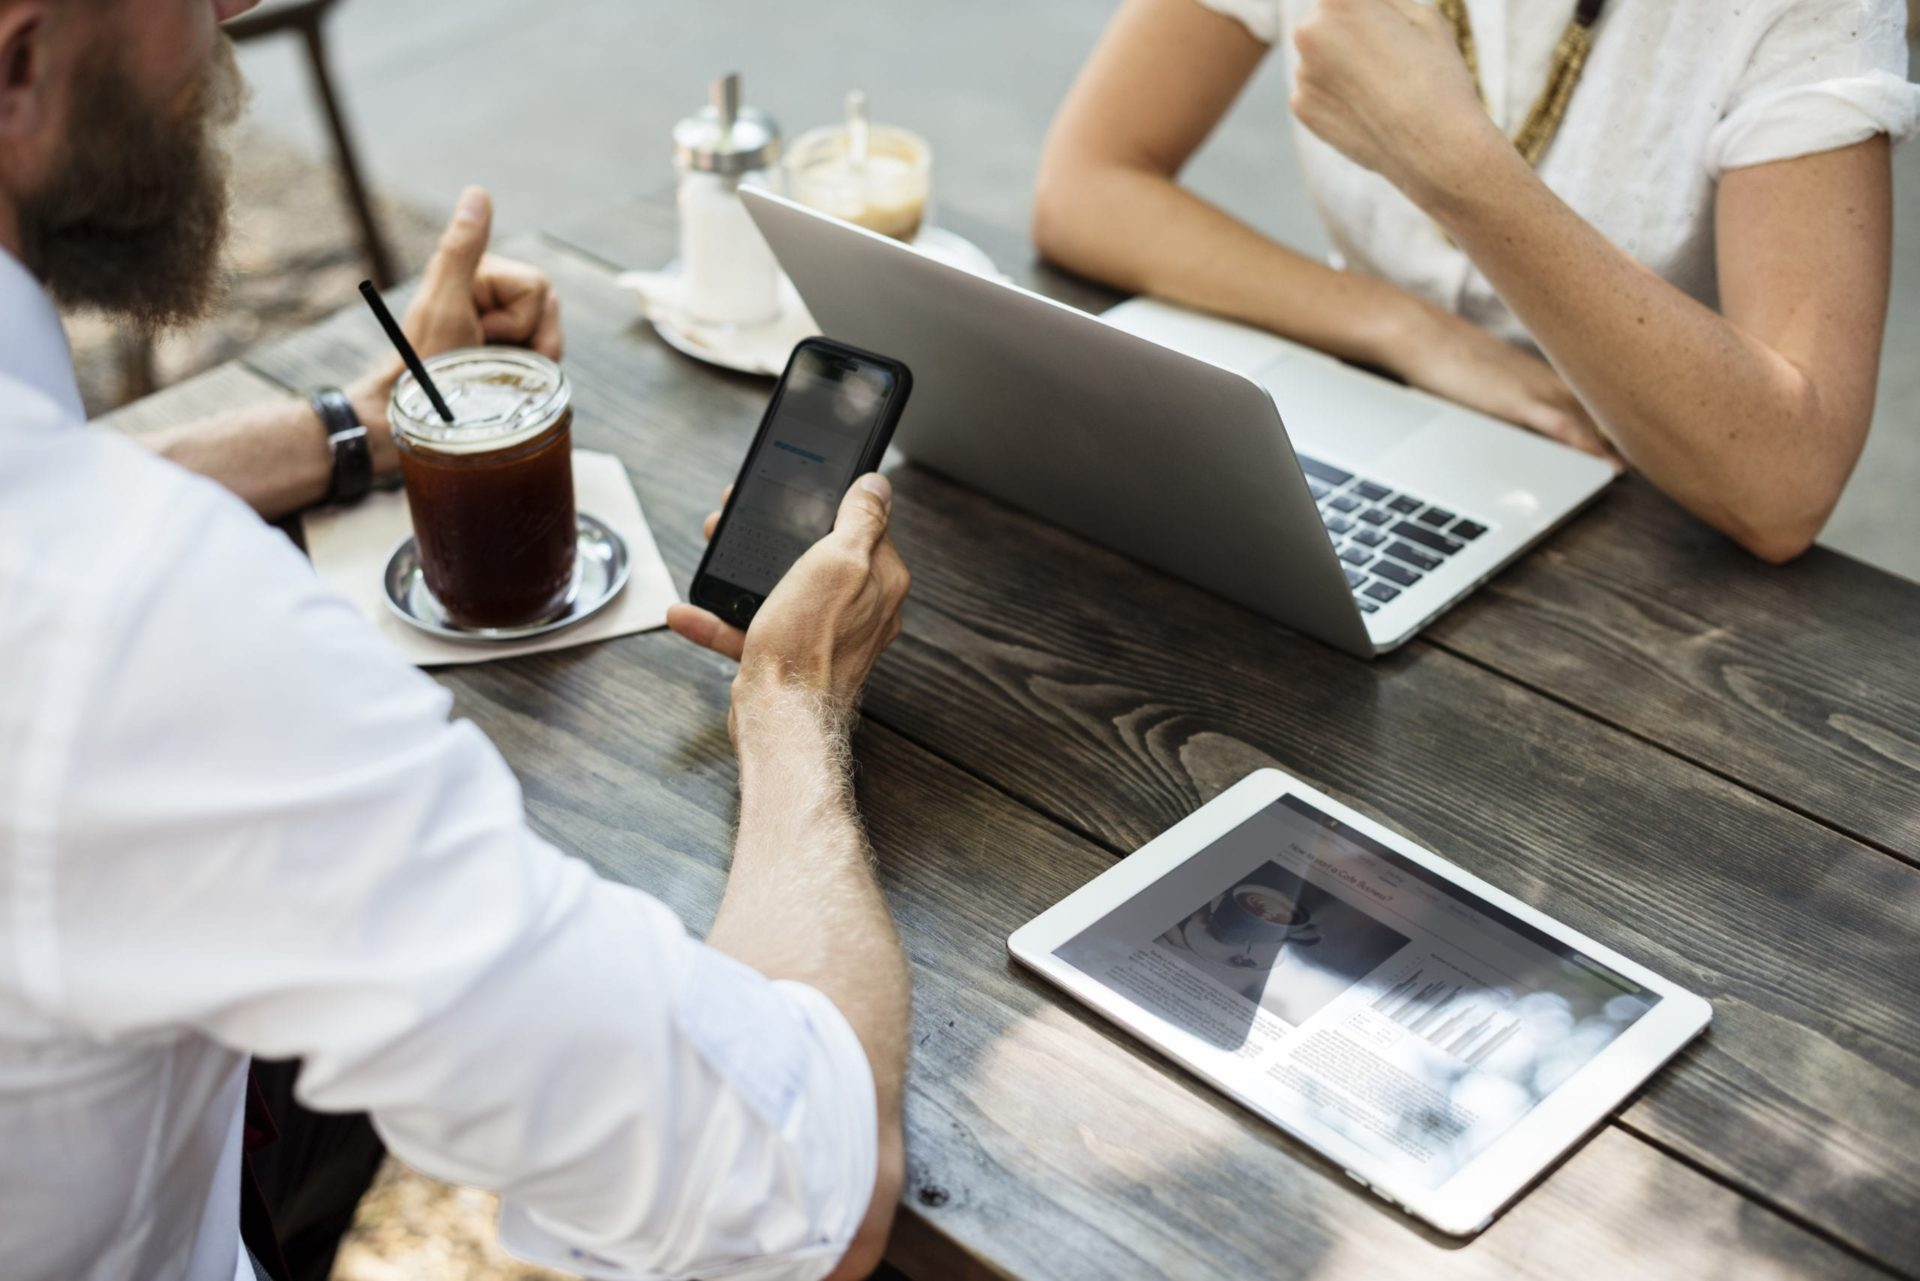 An image of two people working from various devices